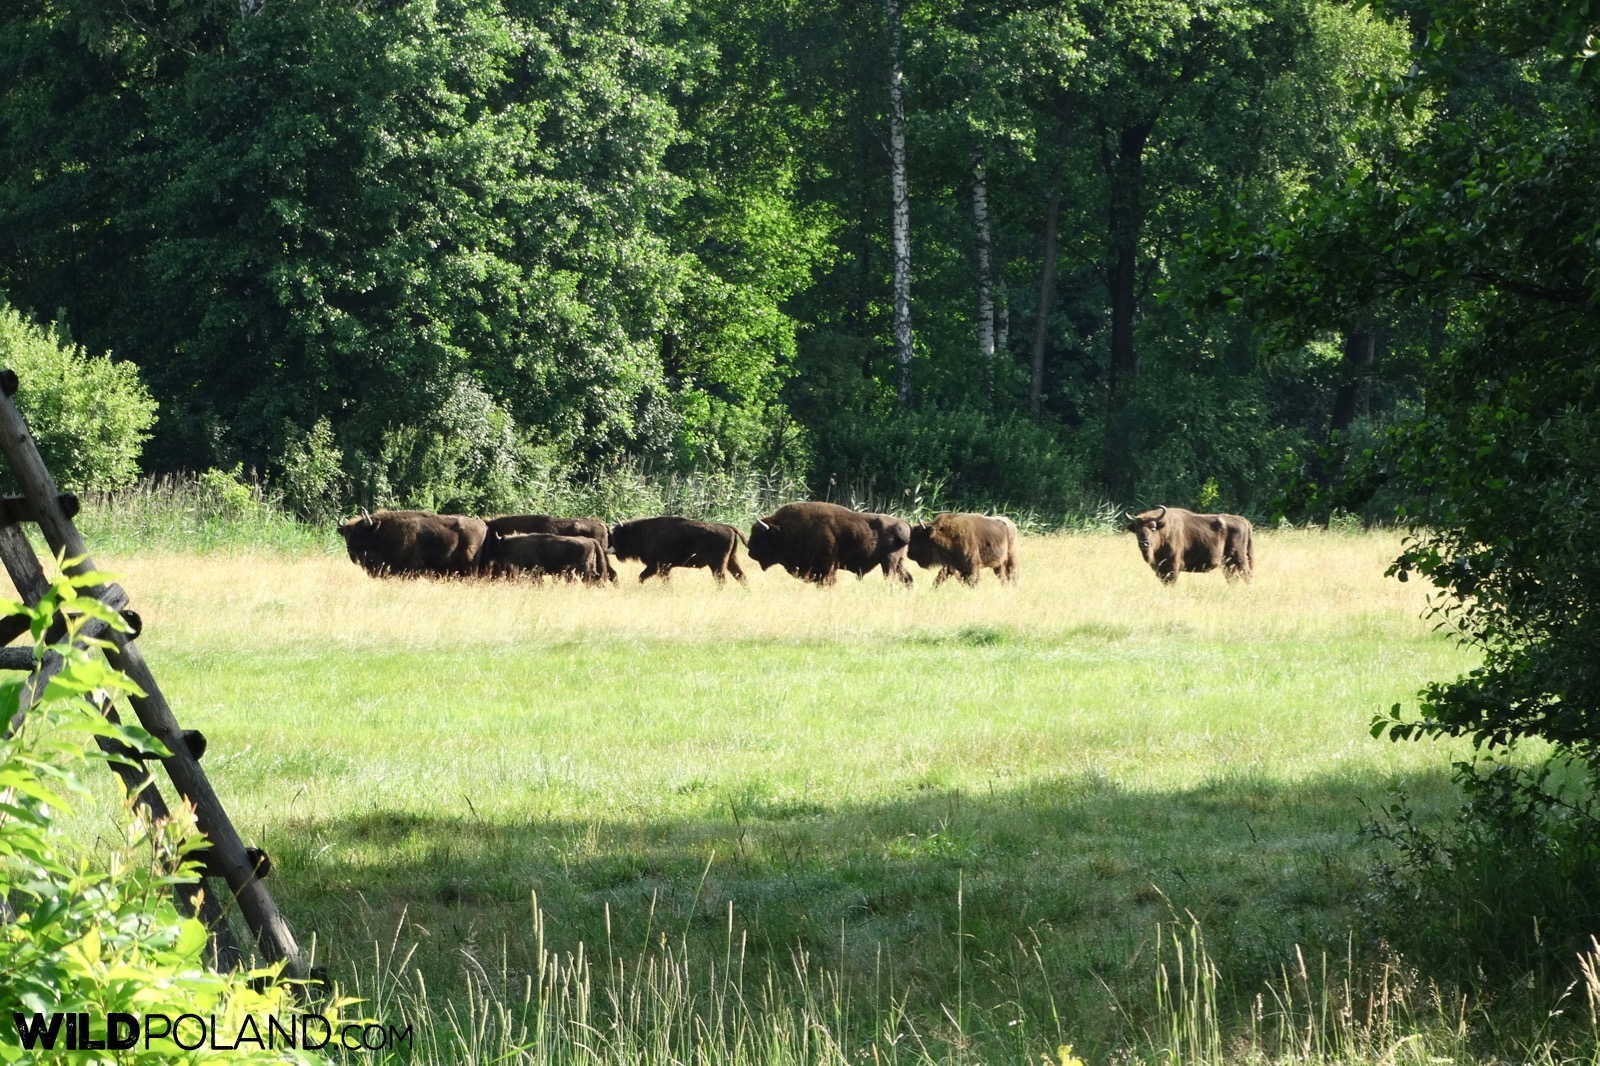 Small herd of european bison at the Białowieża Forest glade, photo by Piotr Dębowski